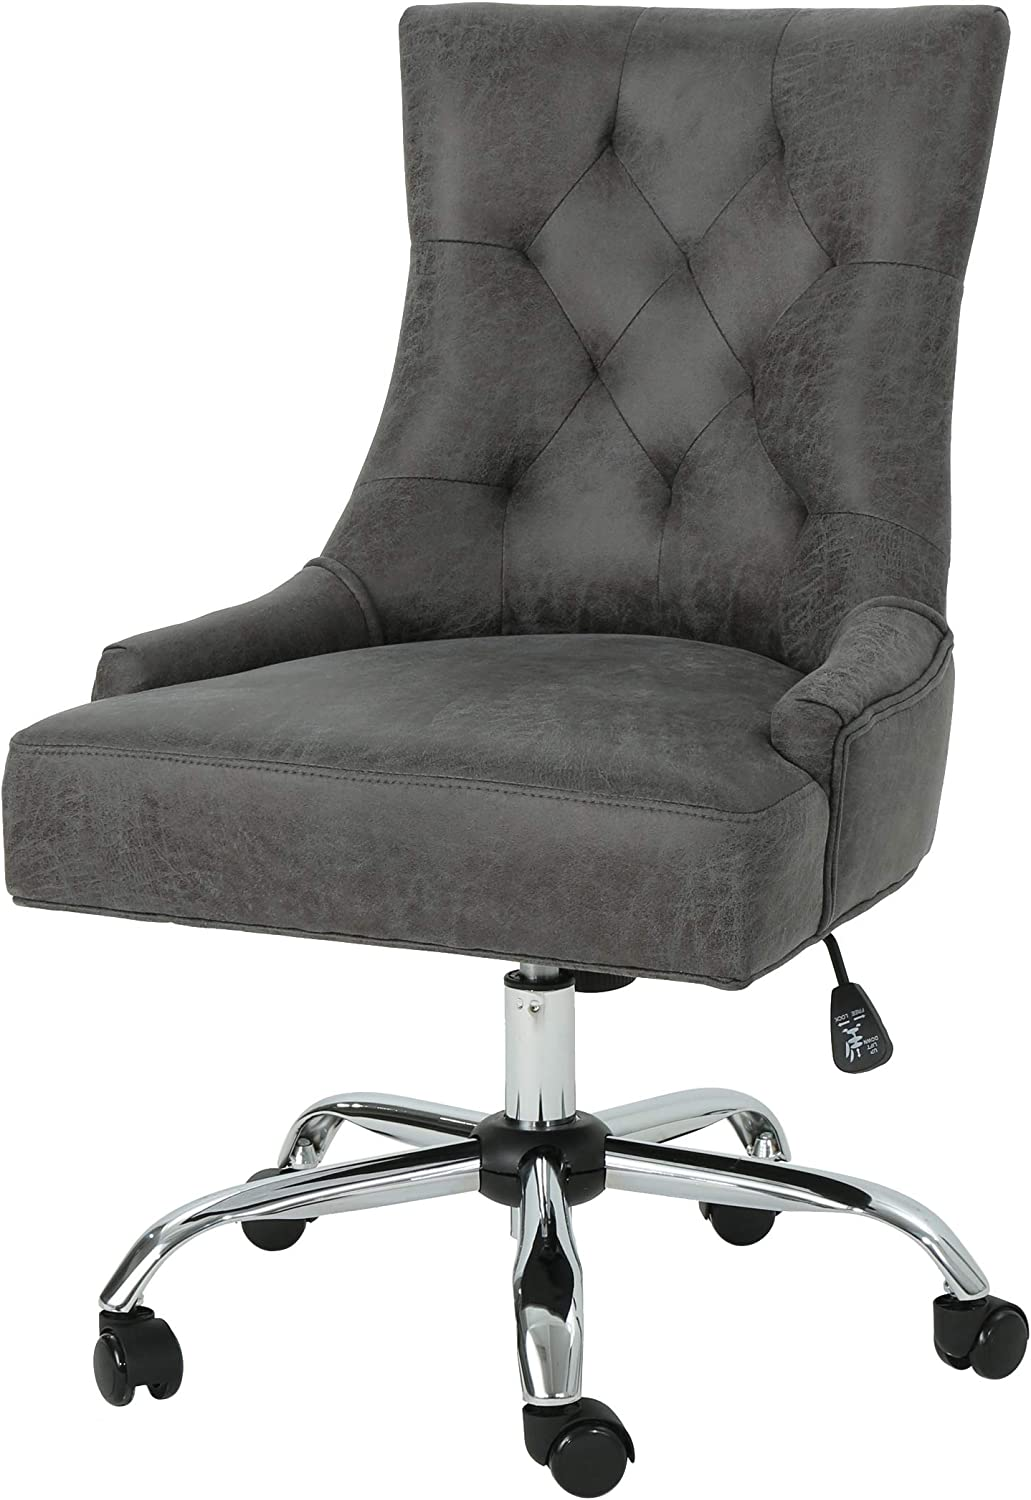 Christopher Knight Home Bagnold Desk Chair, Slate + Chrome: Kitchen & Dining